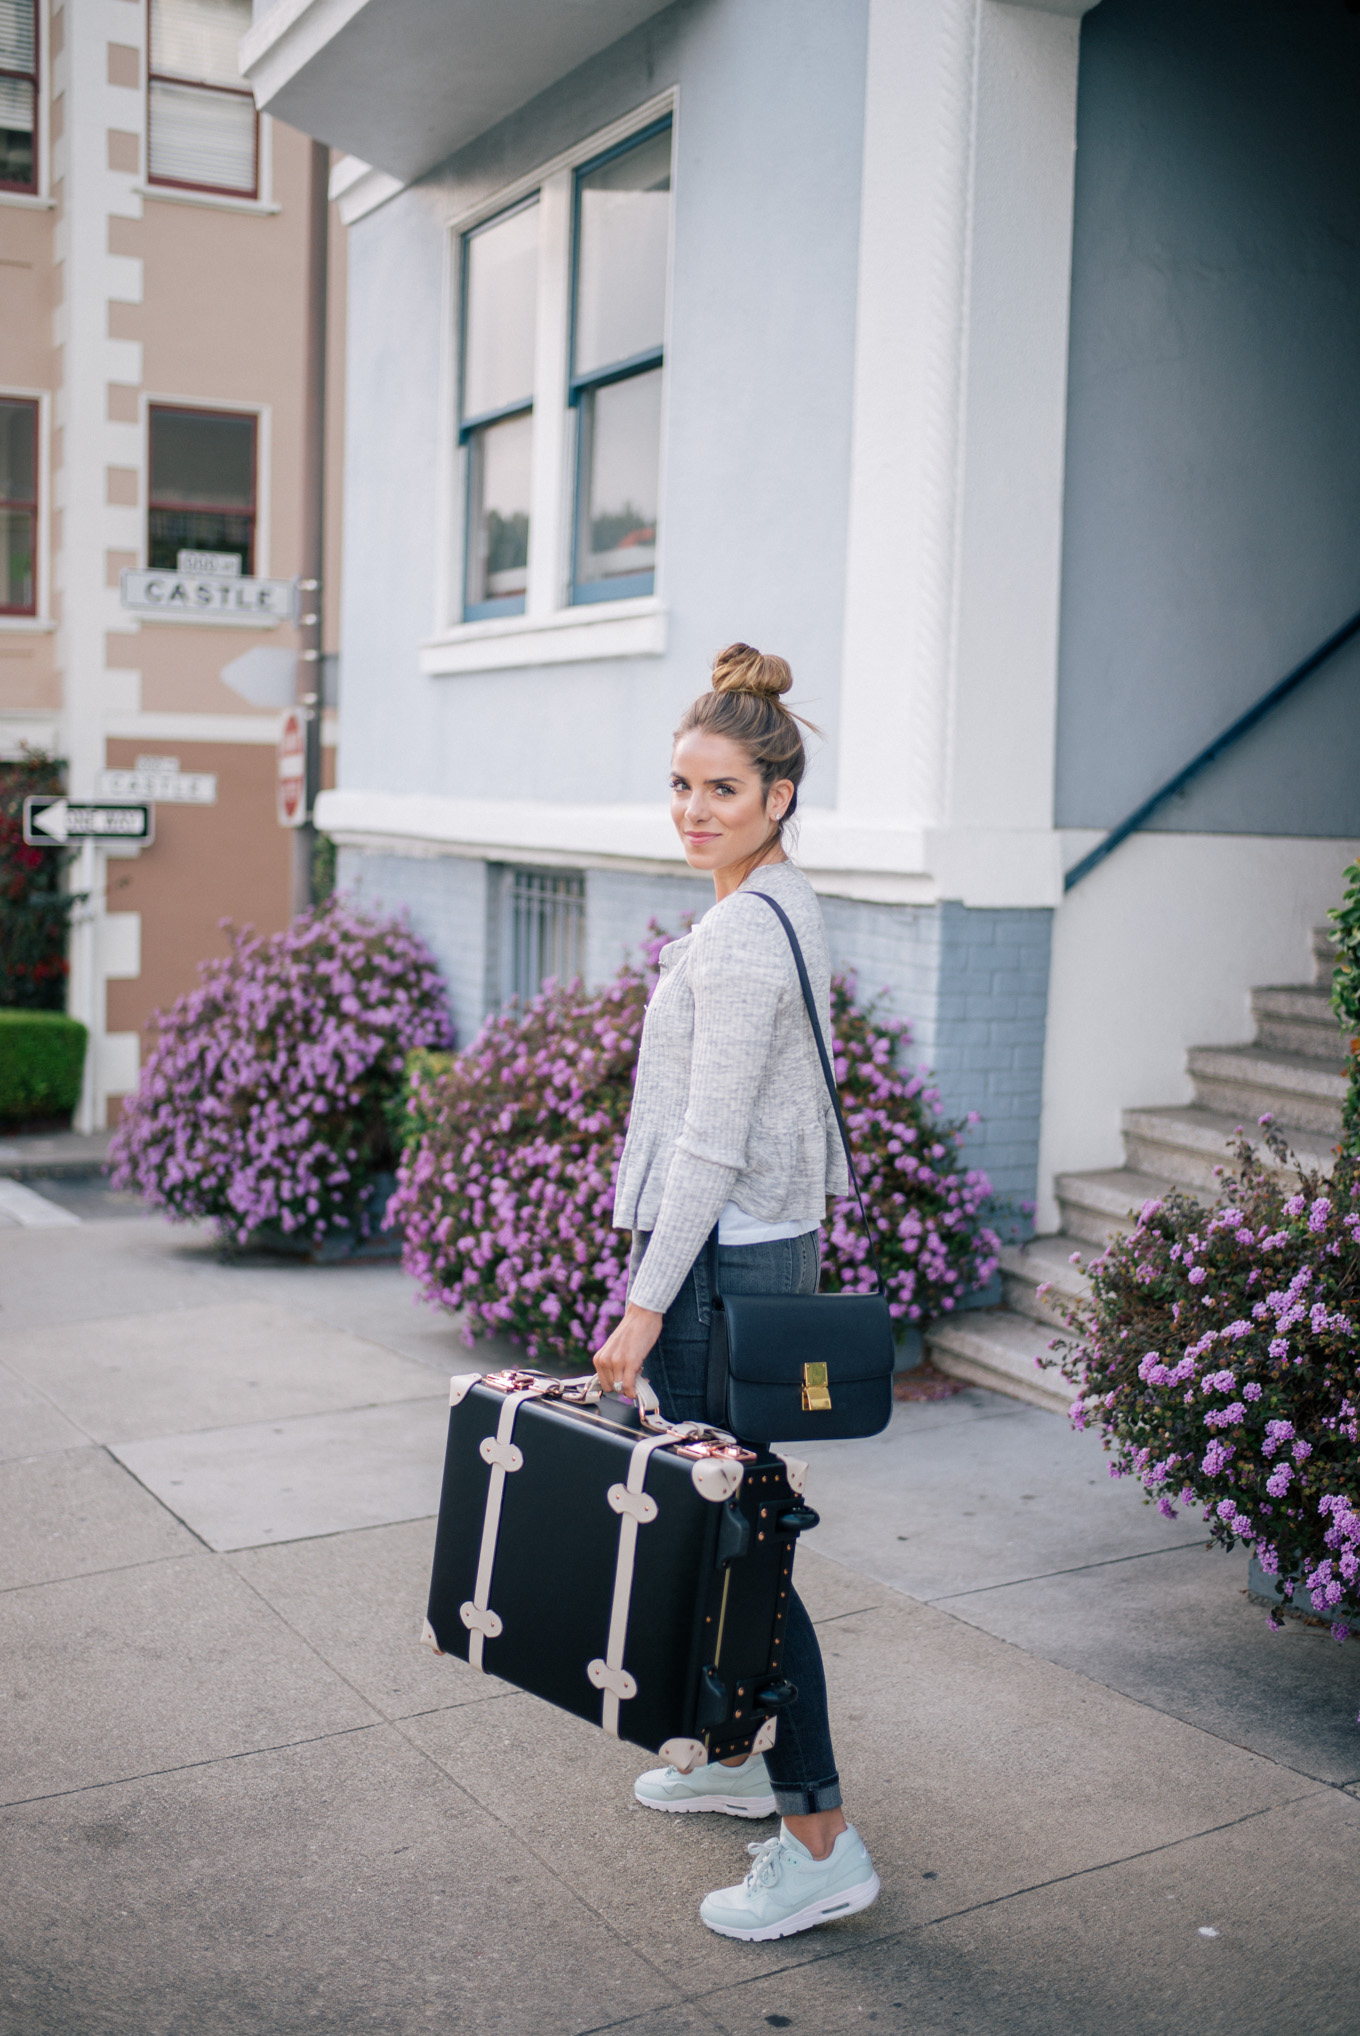 gmg-travel-style-1000977